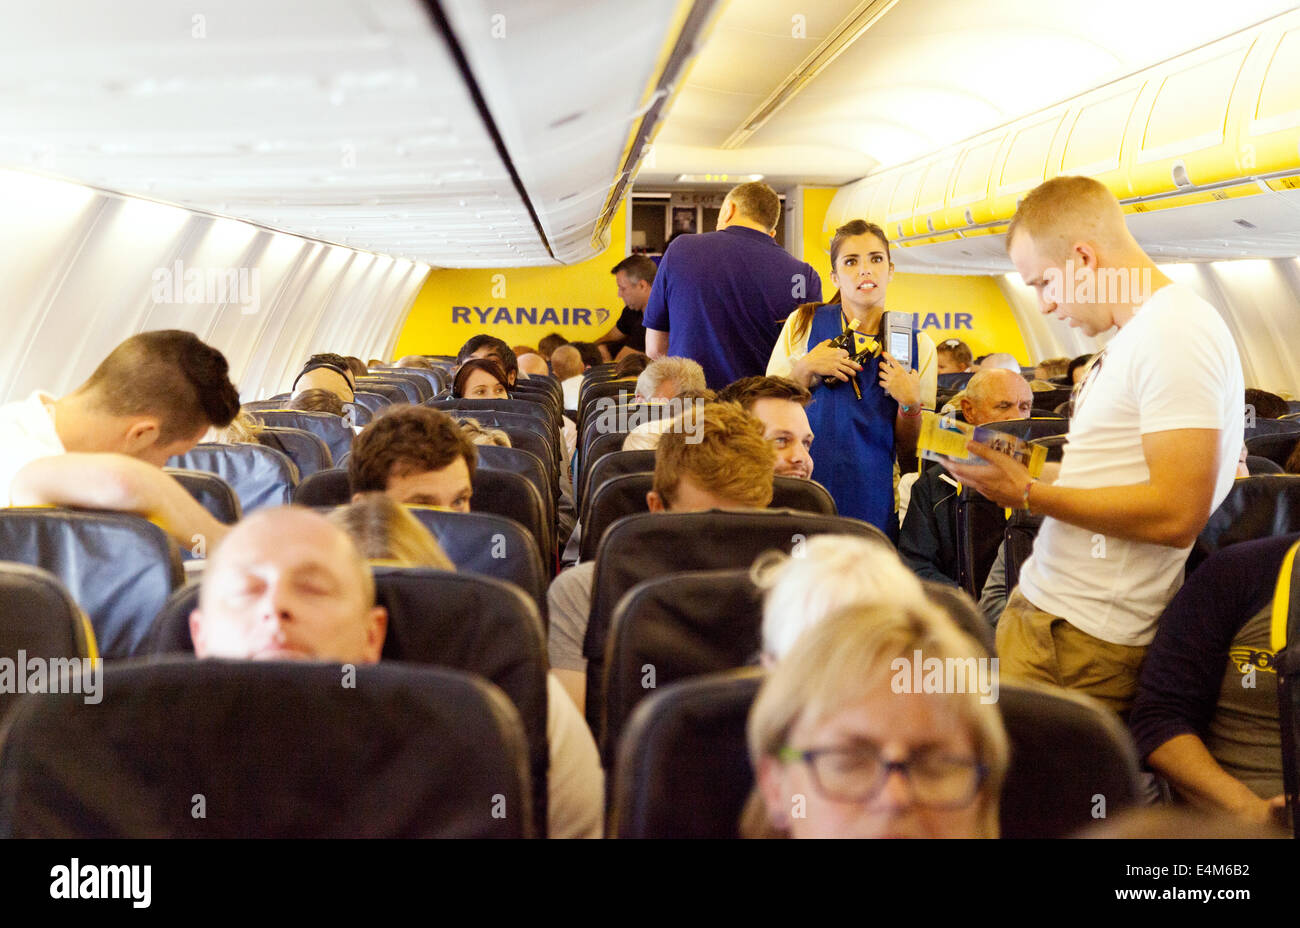 Passengers and staff in the plane cabin, Ryanair low cost airline - Stock Image